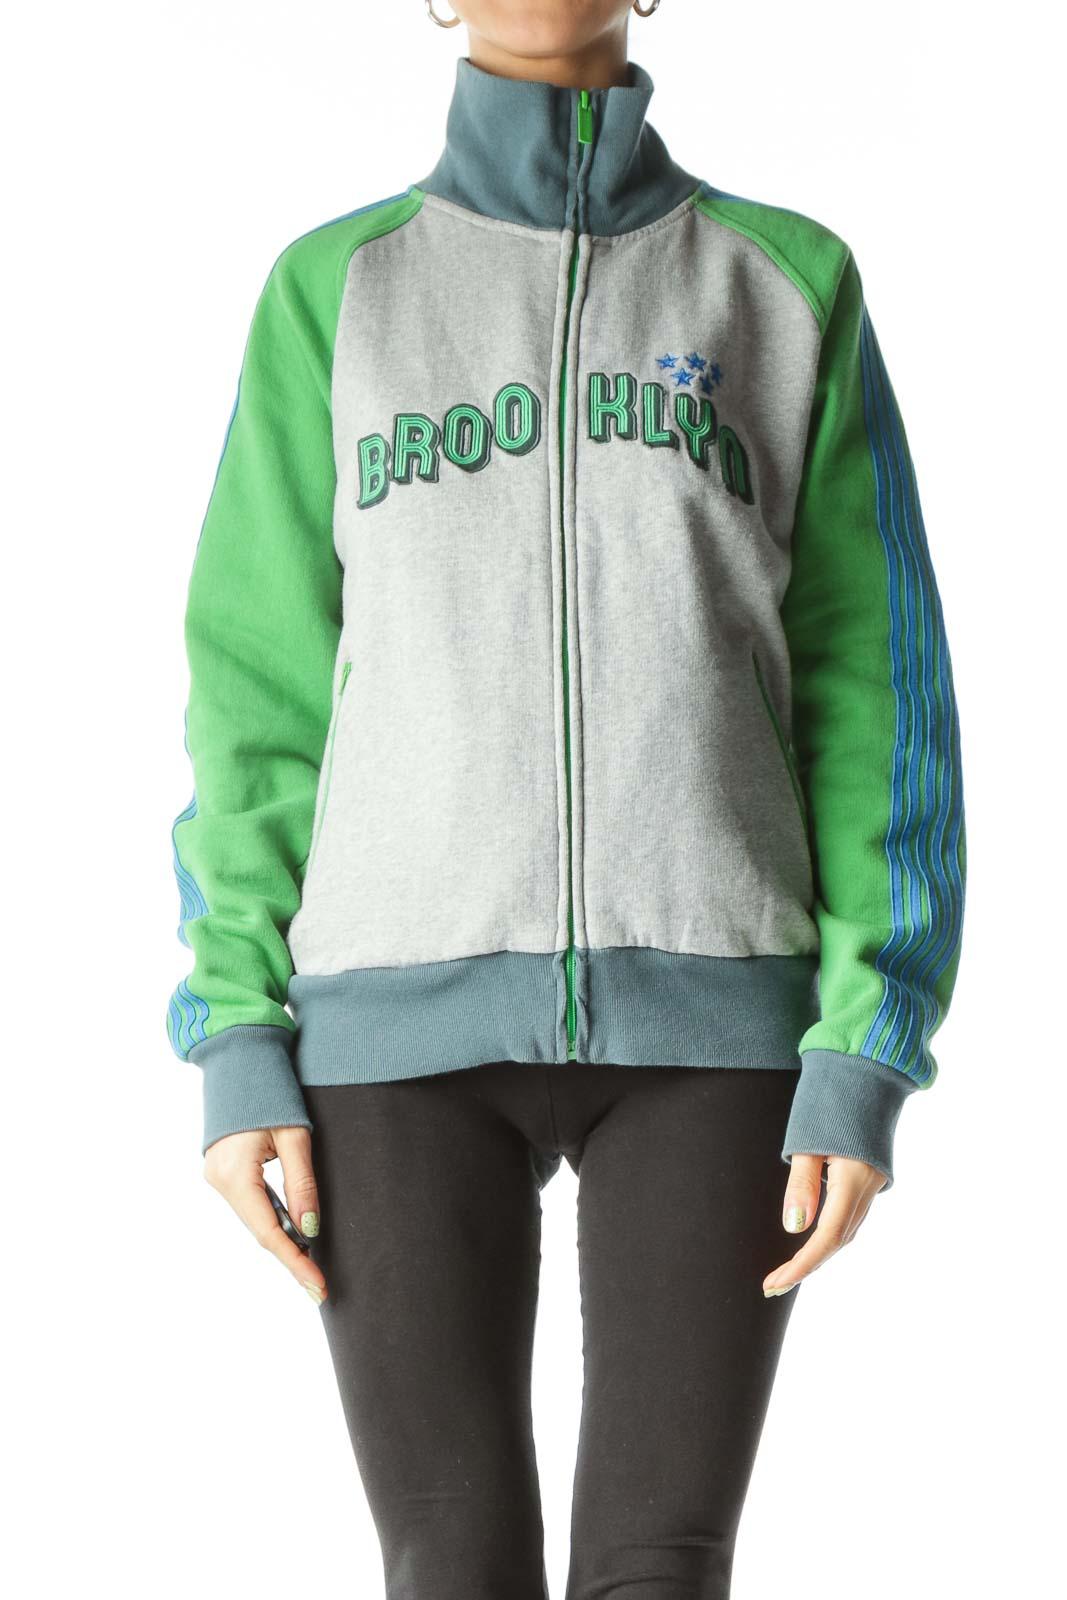 Gray Blue Green Zippered Sweatshirt Jacket